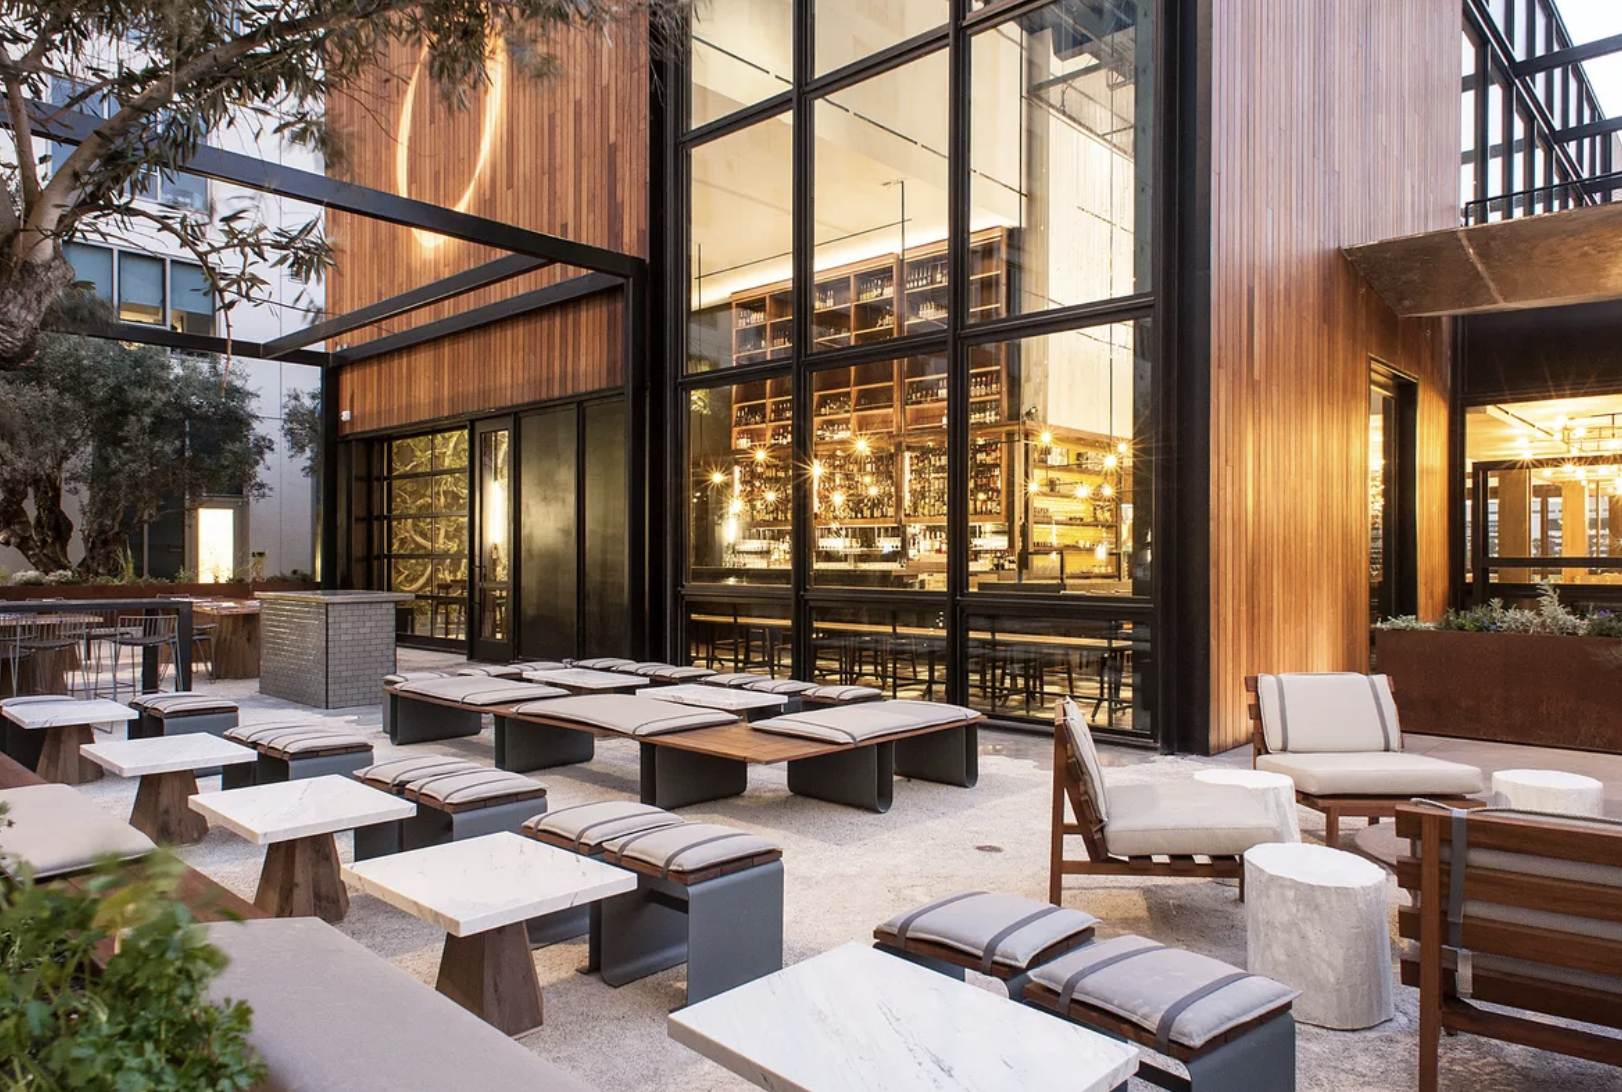 Otium  Highly touted DTLA eatery featuring a brunch buffet, raw bar and grill stations